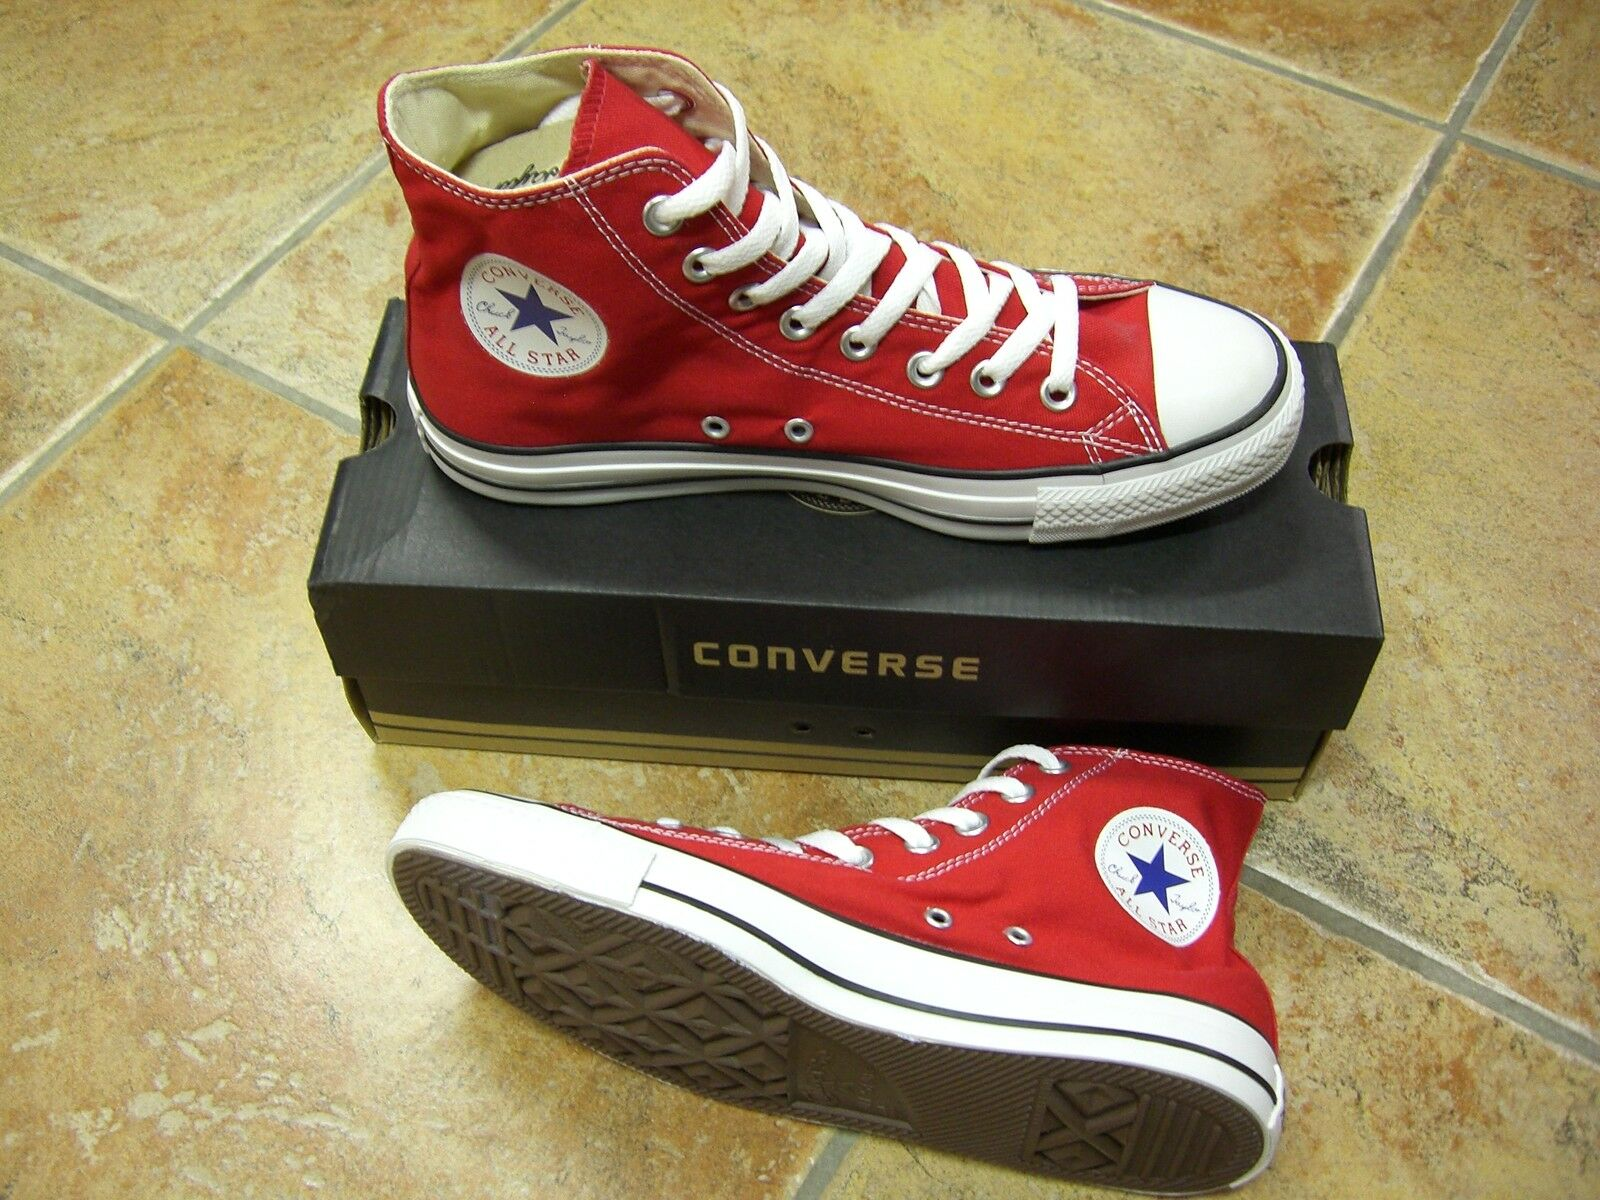 Converse Chucks All Star HI Größe 48 Red M9621C Rot Neu Sneaker